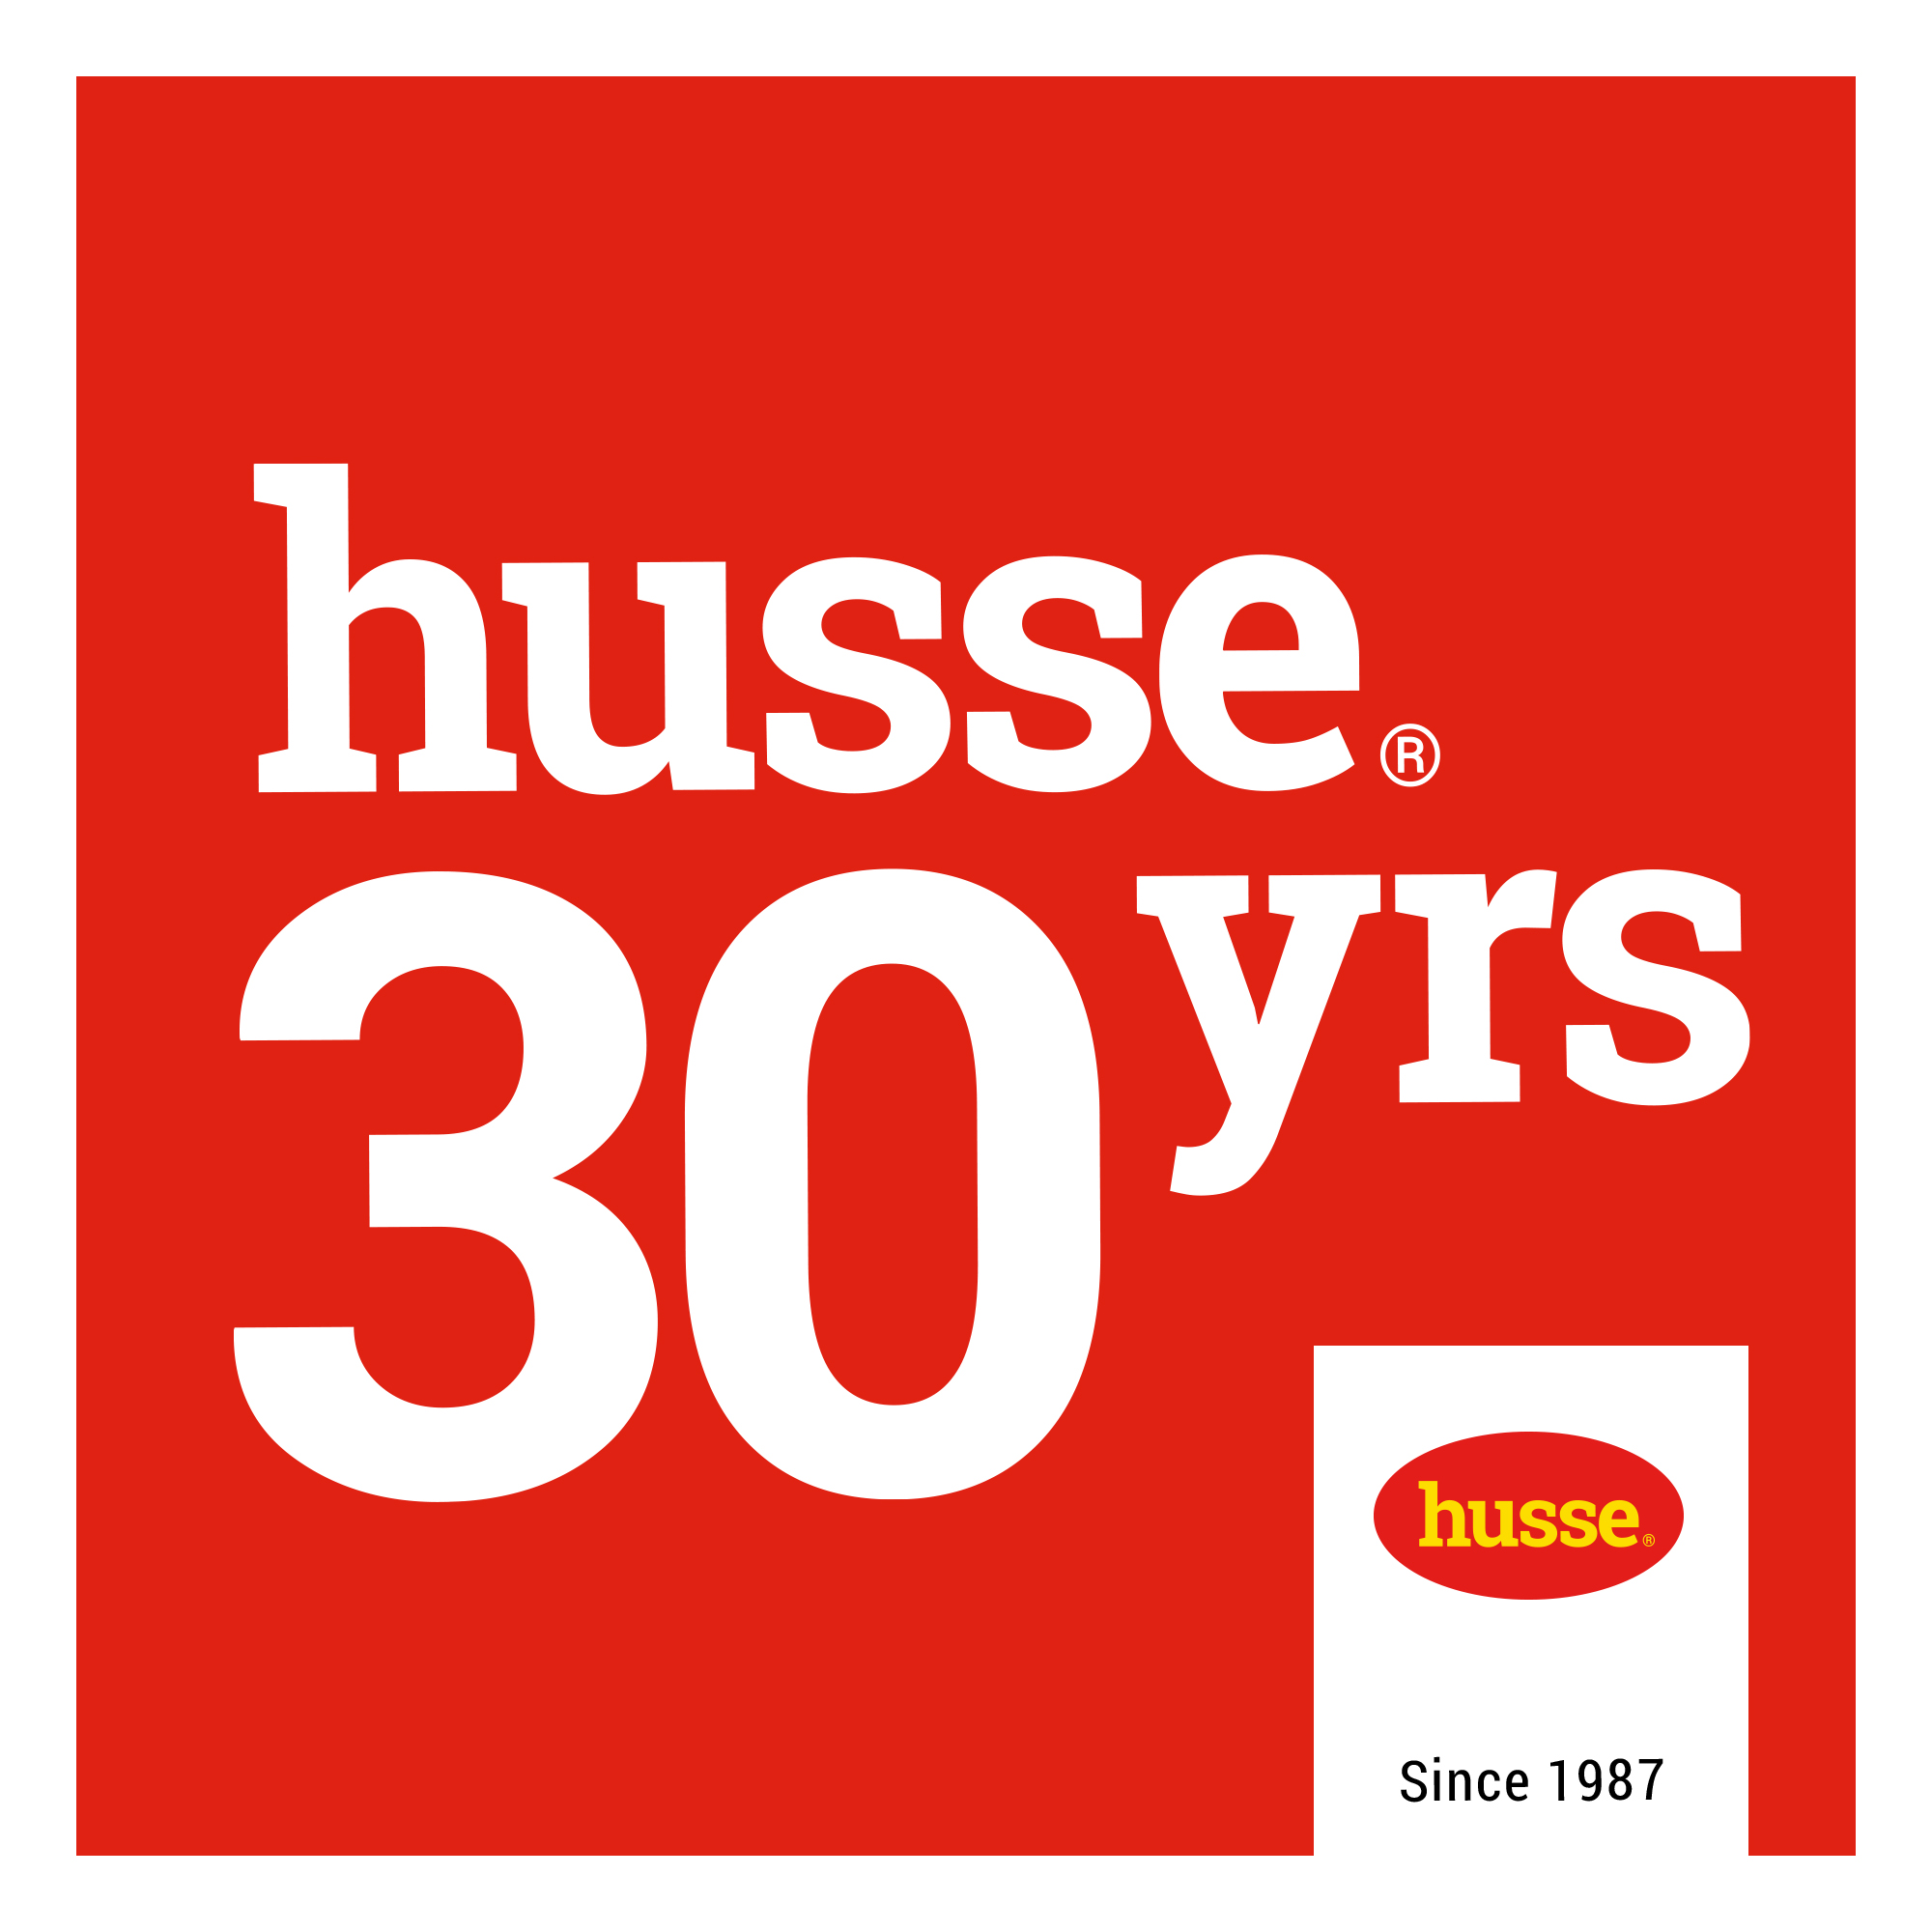 Husse 30 Years